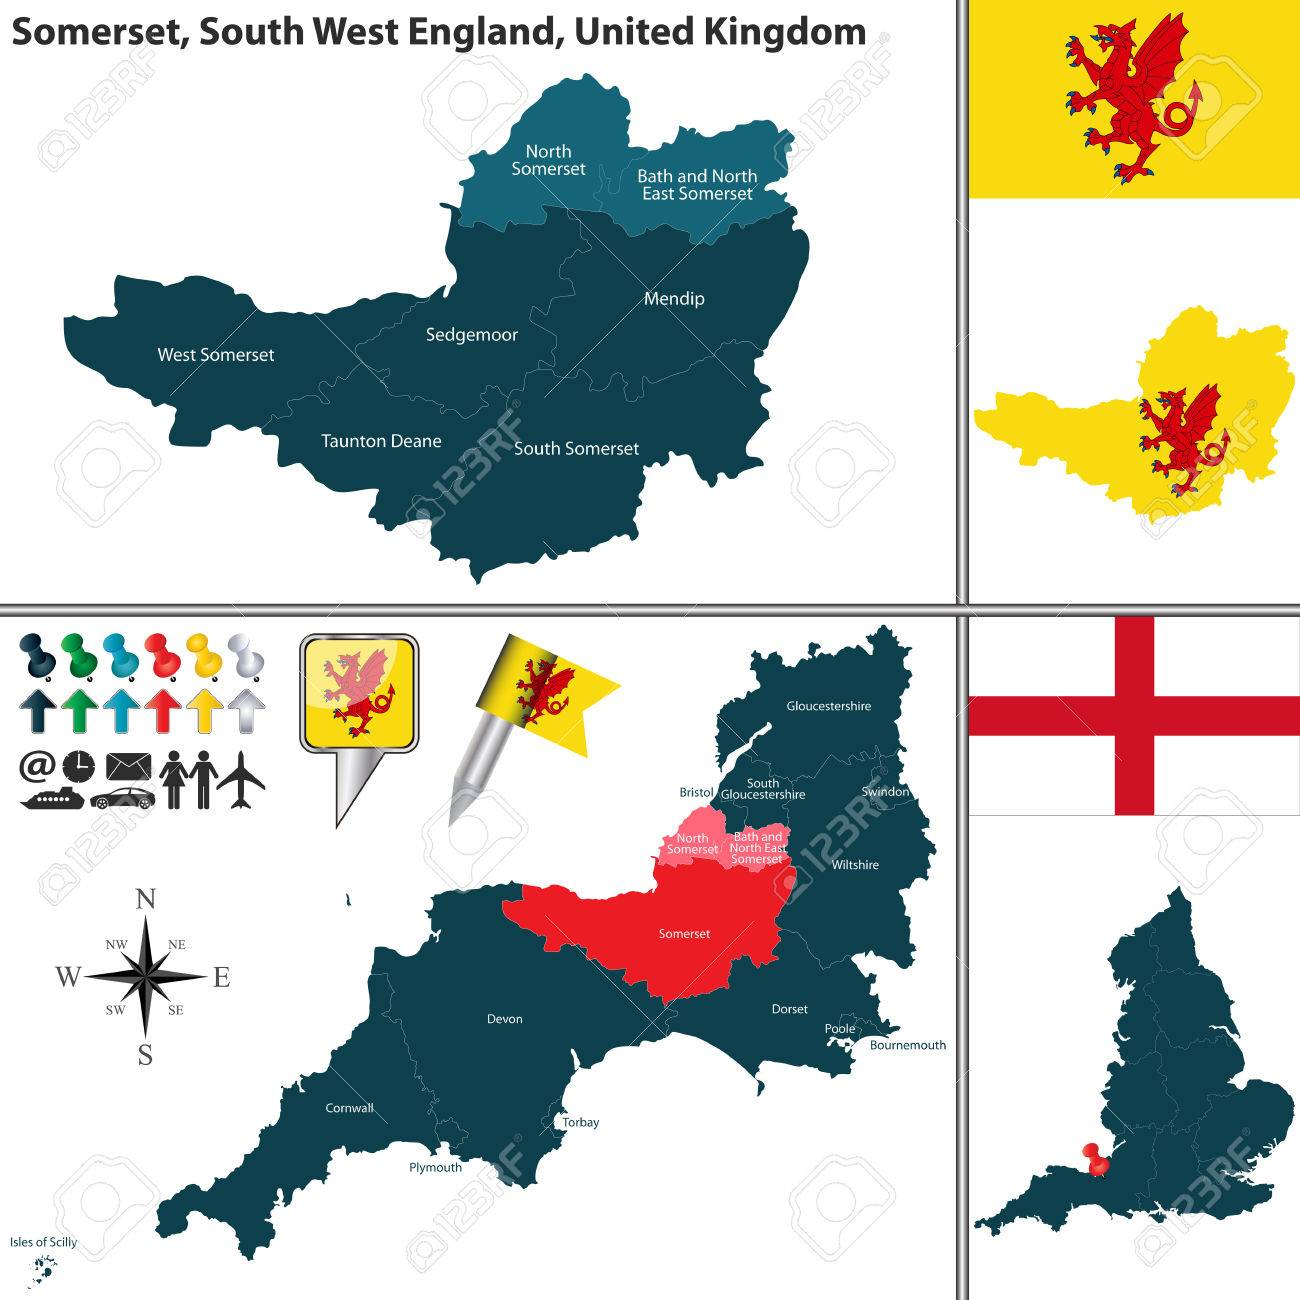 Map Of Somerset In South West England United Kingdom With Regions